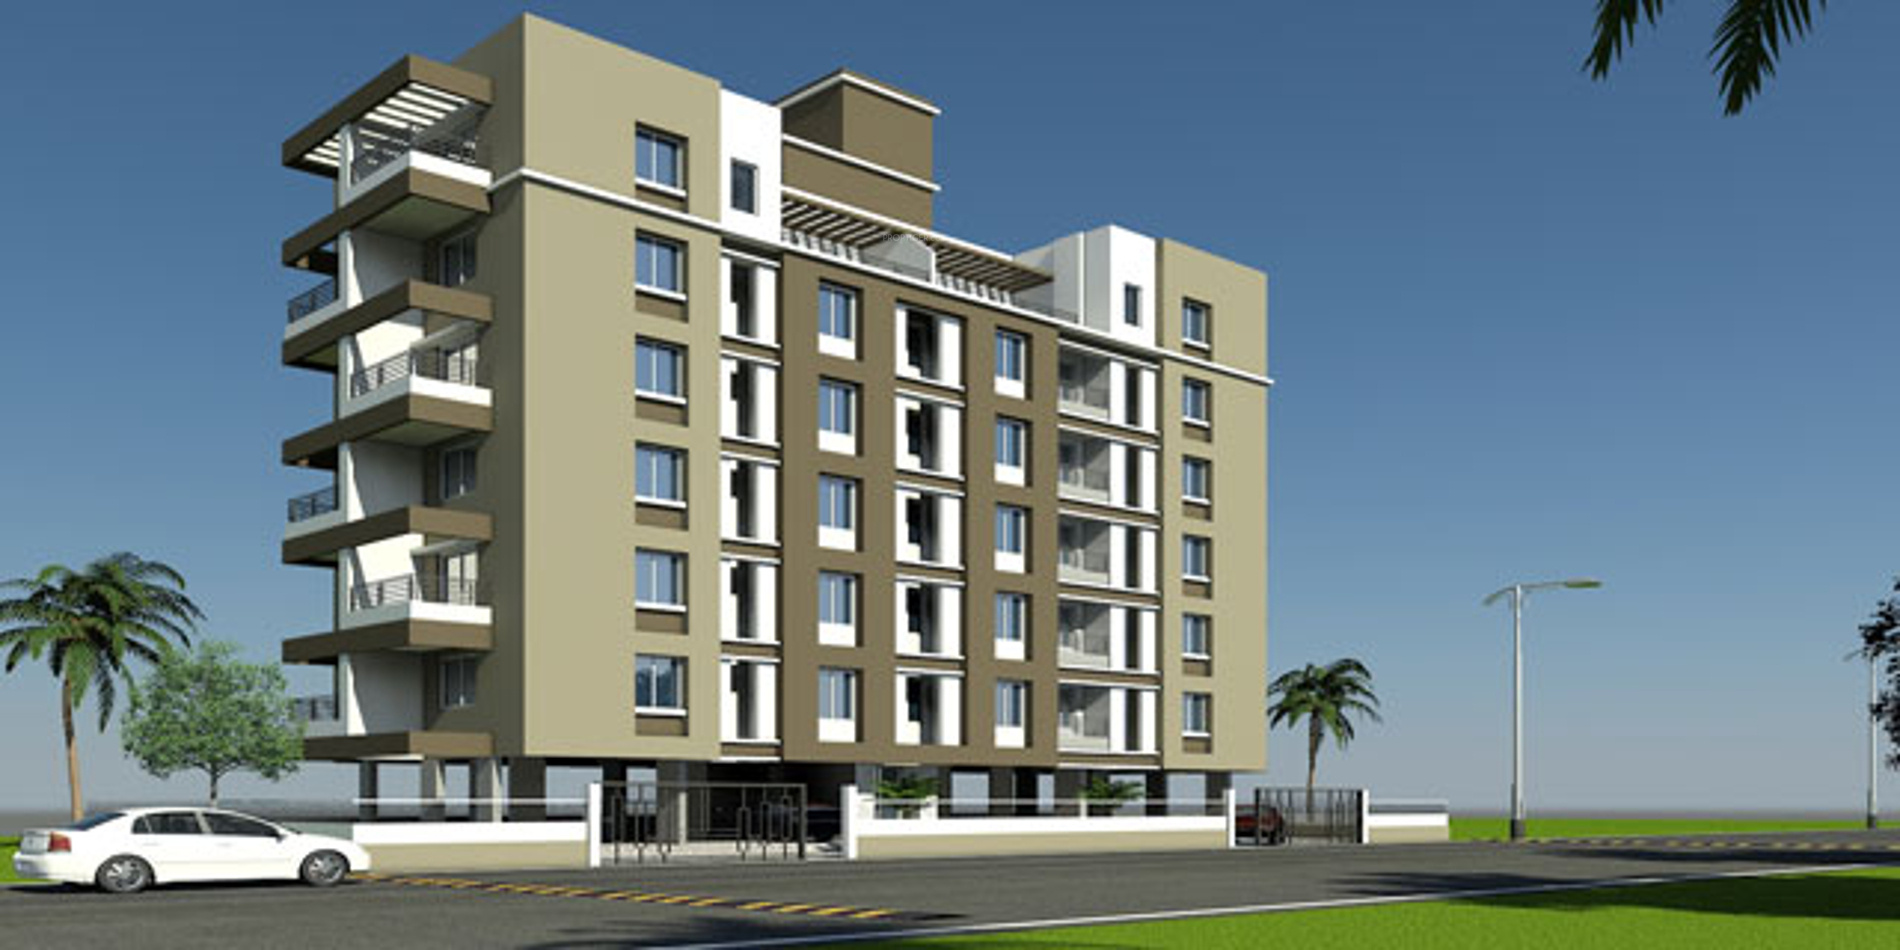 512 sq ft 1 bhk floor plan image delights space deep for 512 plan